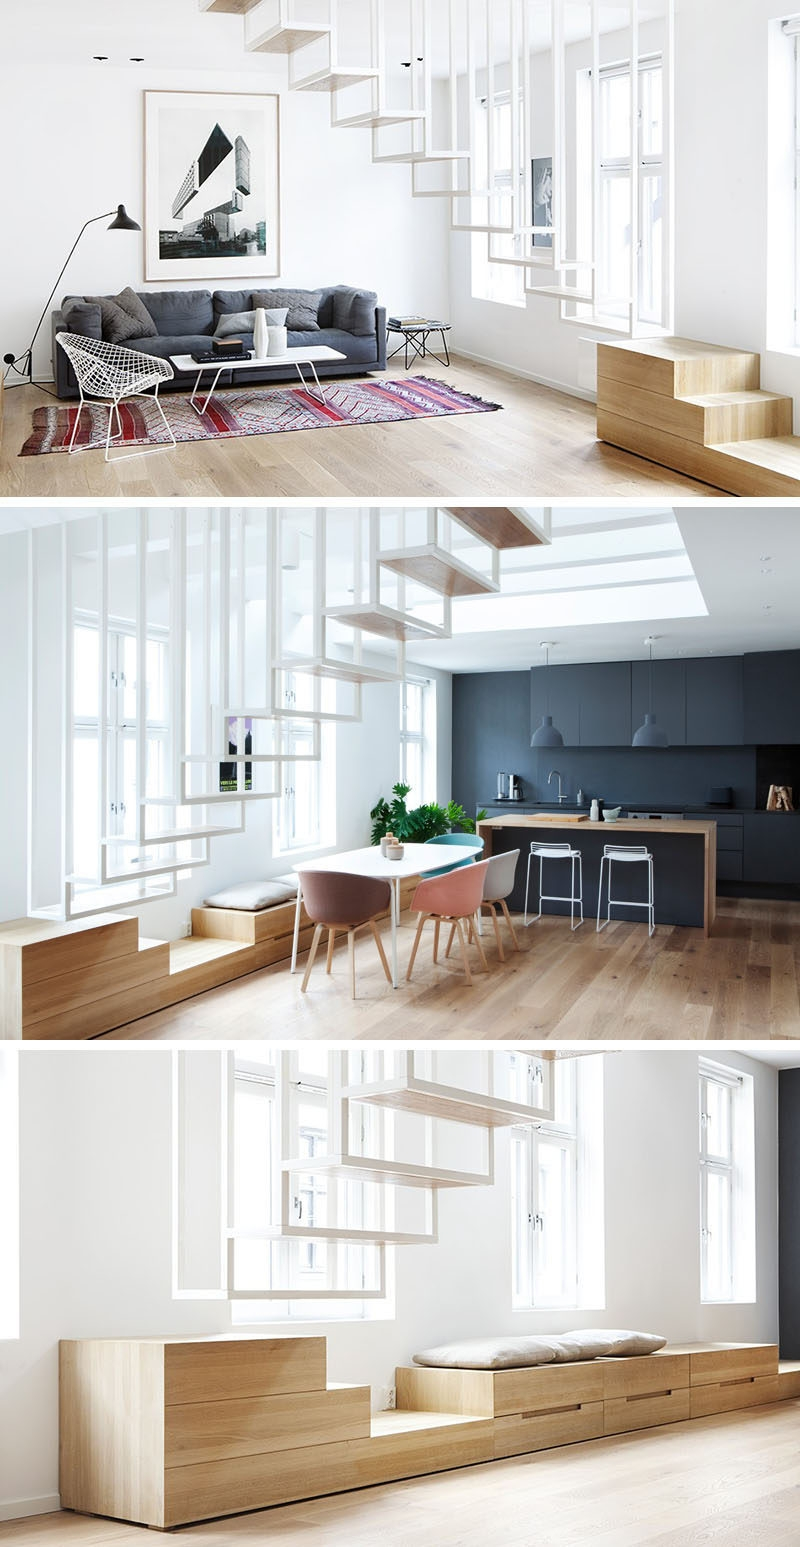 13 Stair Design Ideas For Small Spaces | Space Saving Staircases For Small Homes | Design | Spiral Staircases | Staircase Design | Attic Ladder | Staircase Ideas